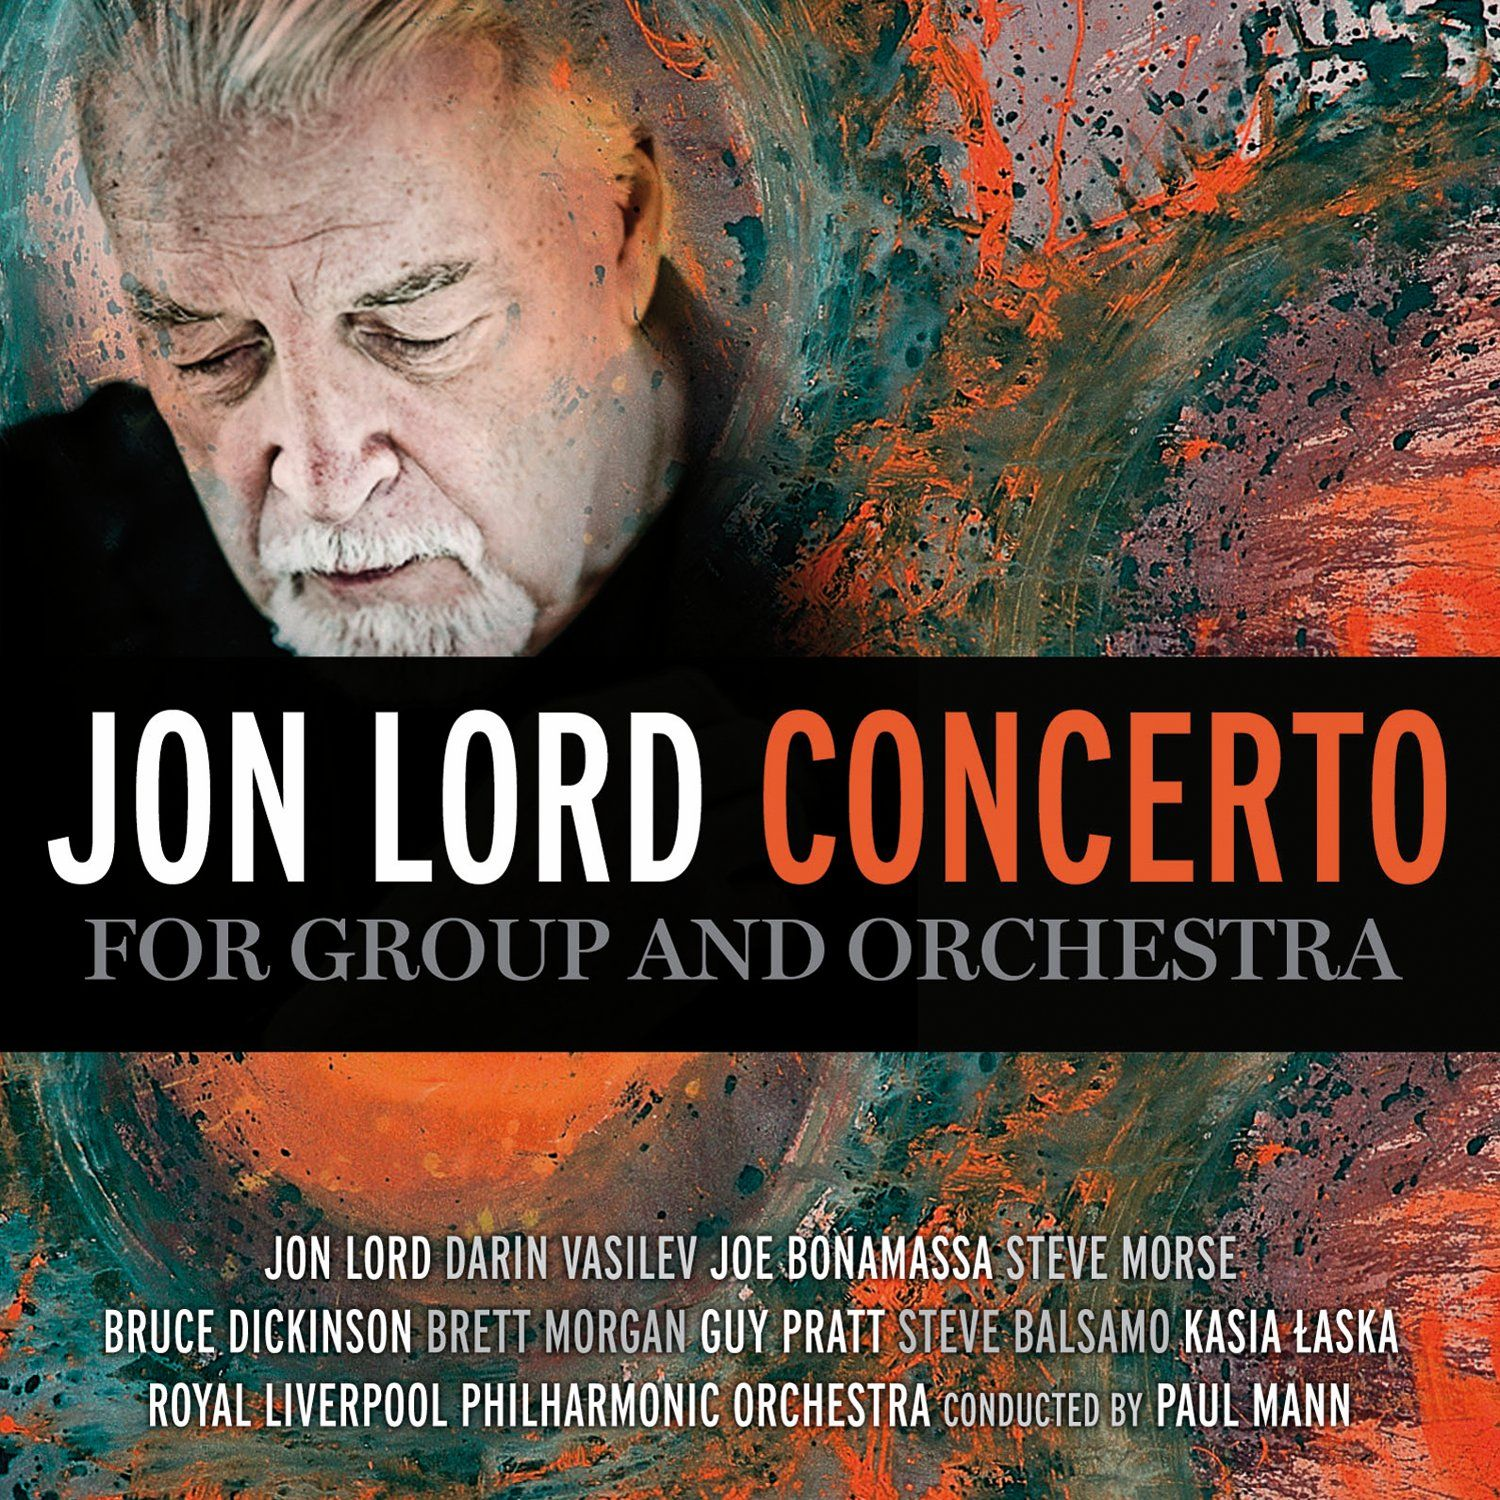 Royal Liverpool Philharmonic Orchestra: Jon Lord - Concerto for Group and Orchestra